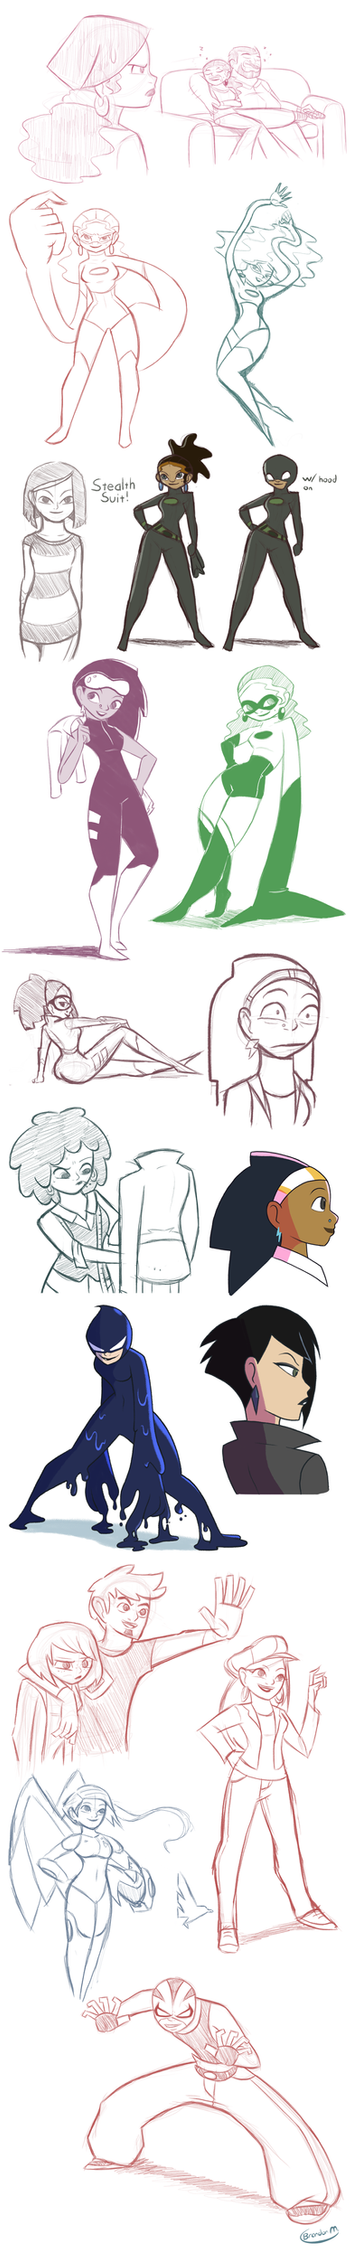 Character Sketches 8 by gamepal